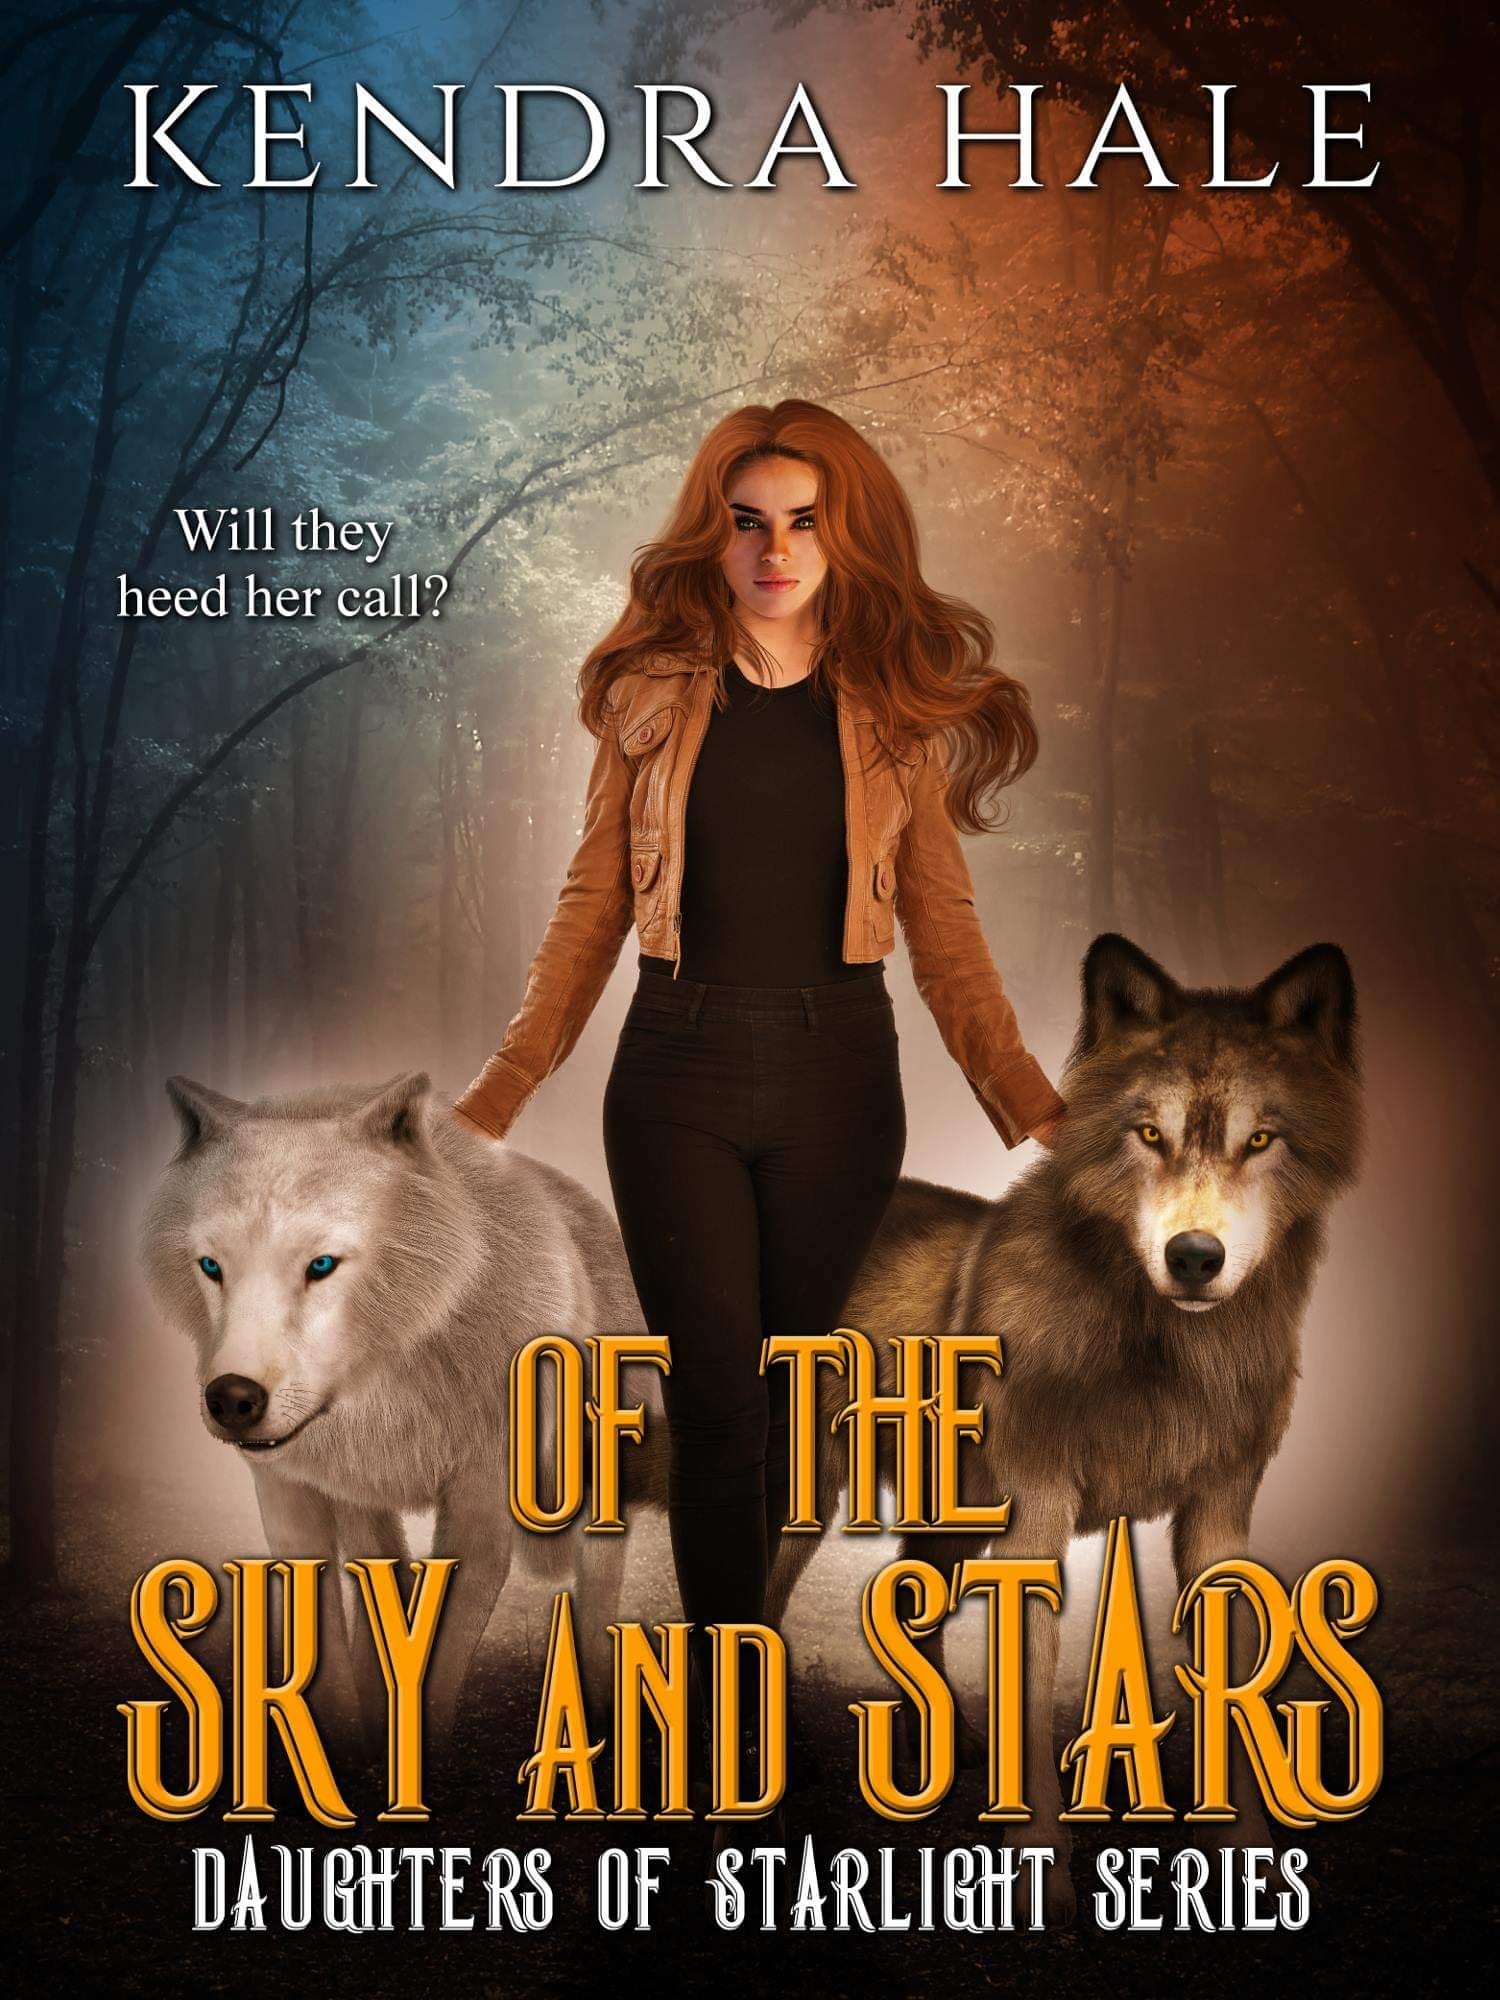 Of The Sky And Stars - Daughters of Starlight Series by Kendra Hale